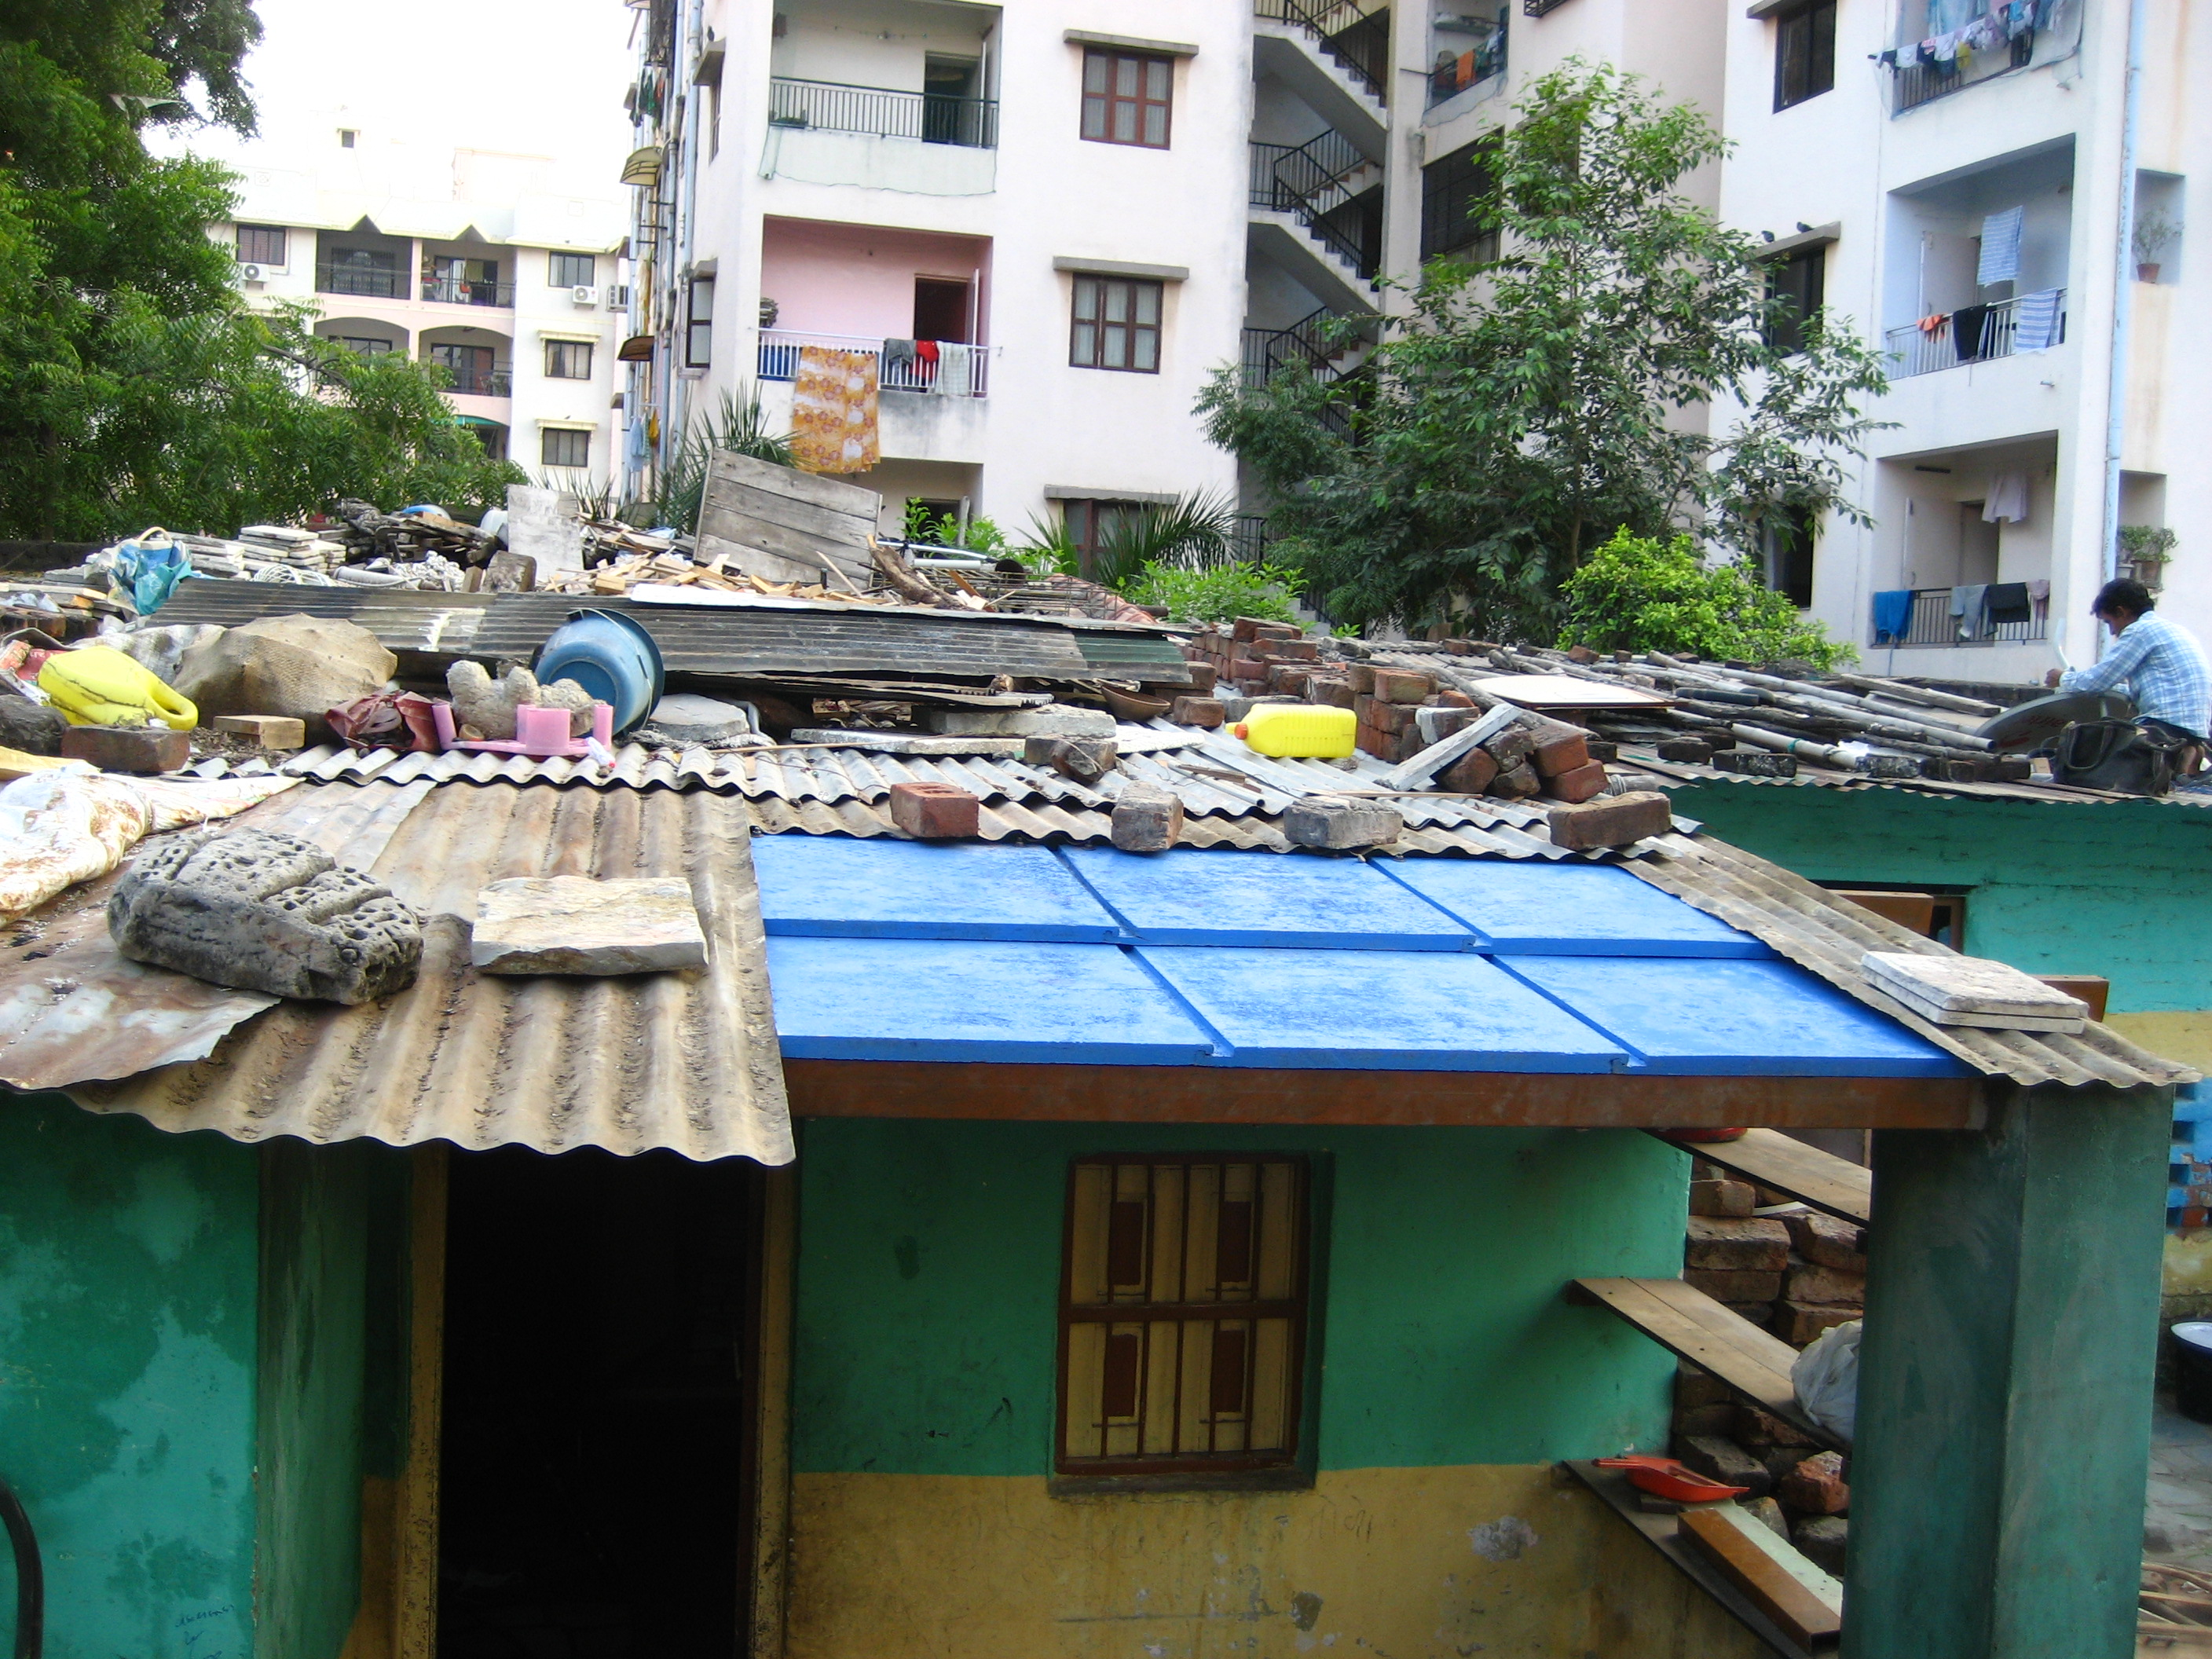 More Than 1 Billion People Are Currently Living In Slums Worldwide, And  This Figure Is Expected To Double By 2030. Existing Affordable Roofing  Options ...